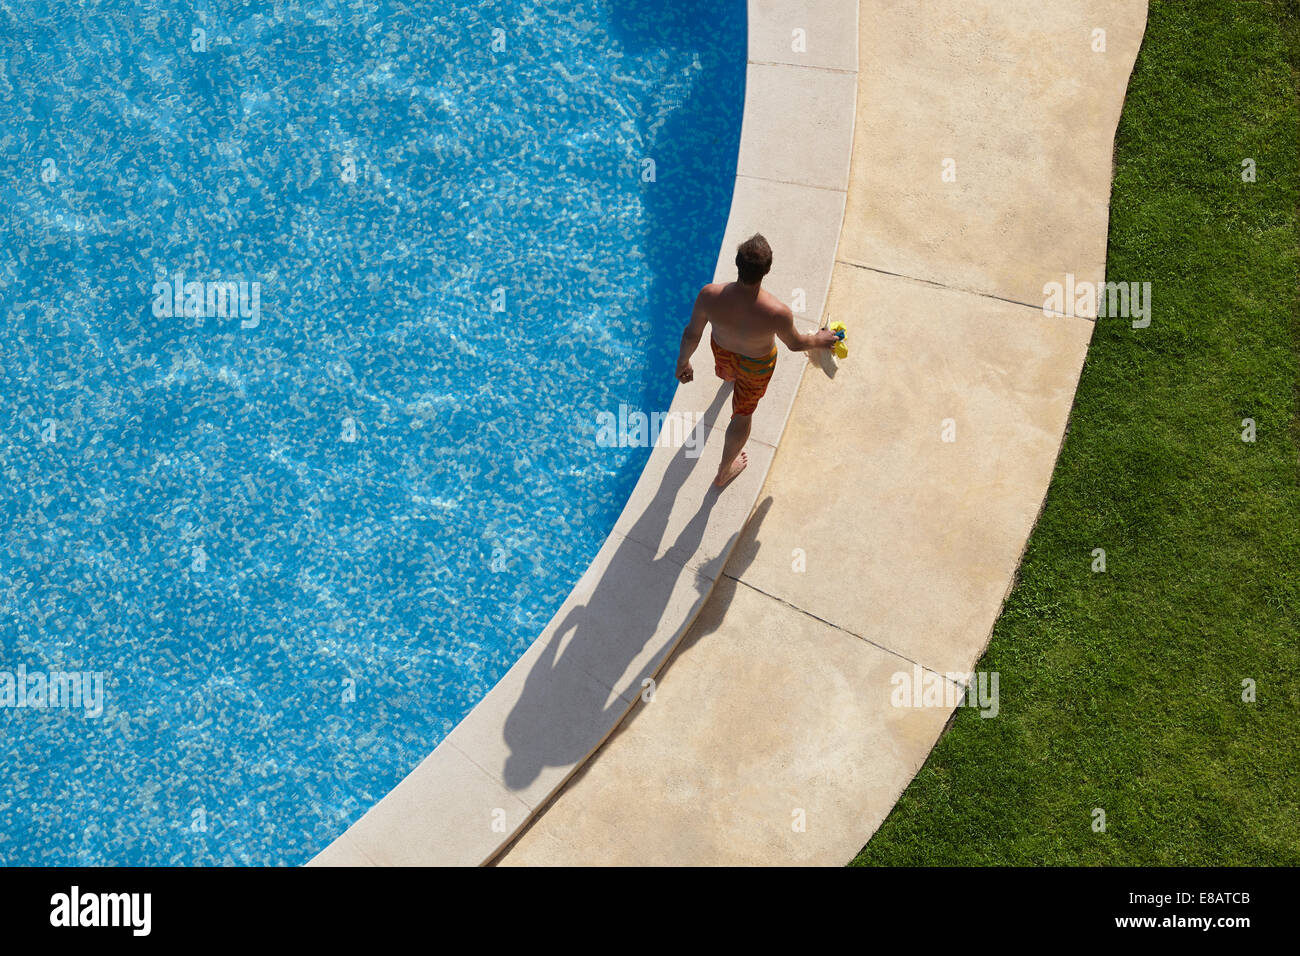 Overhead view of man walking around swimming pool - Stock Image